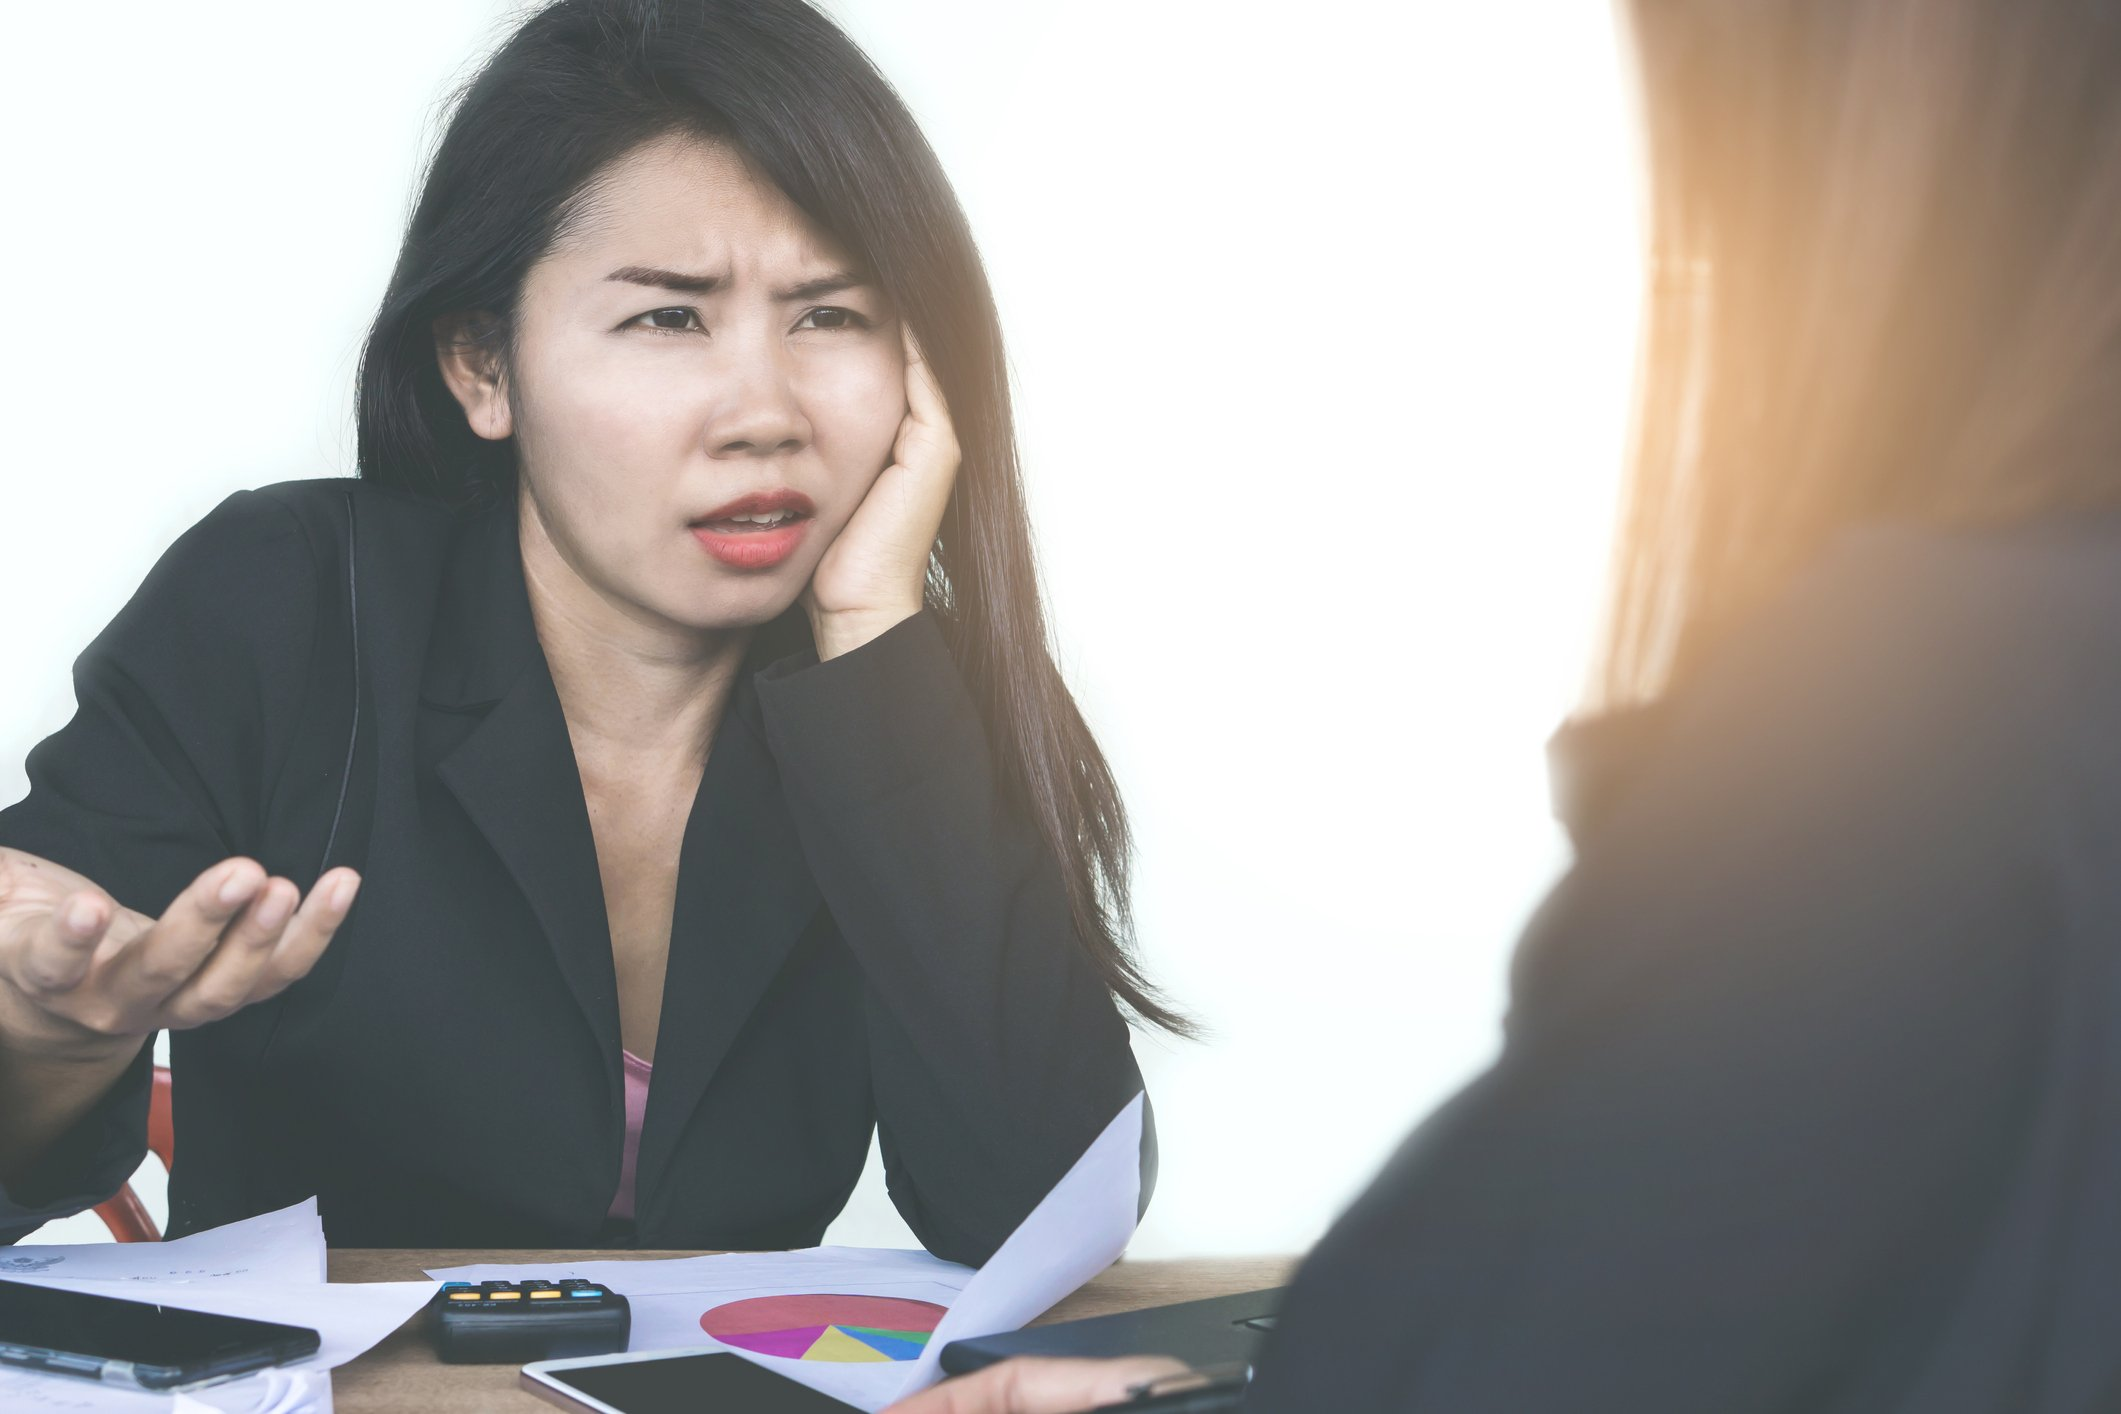 Angry lady scolding someone